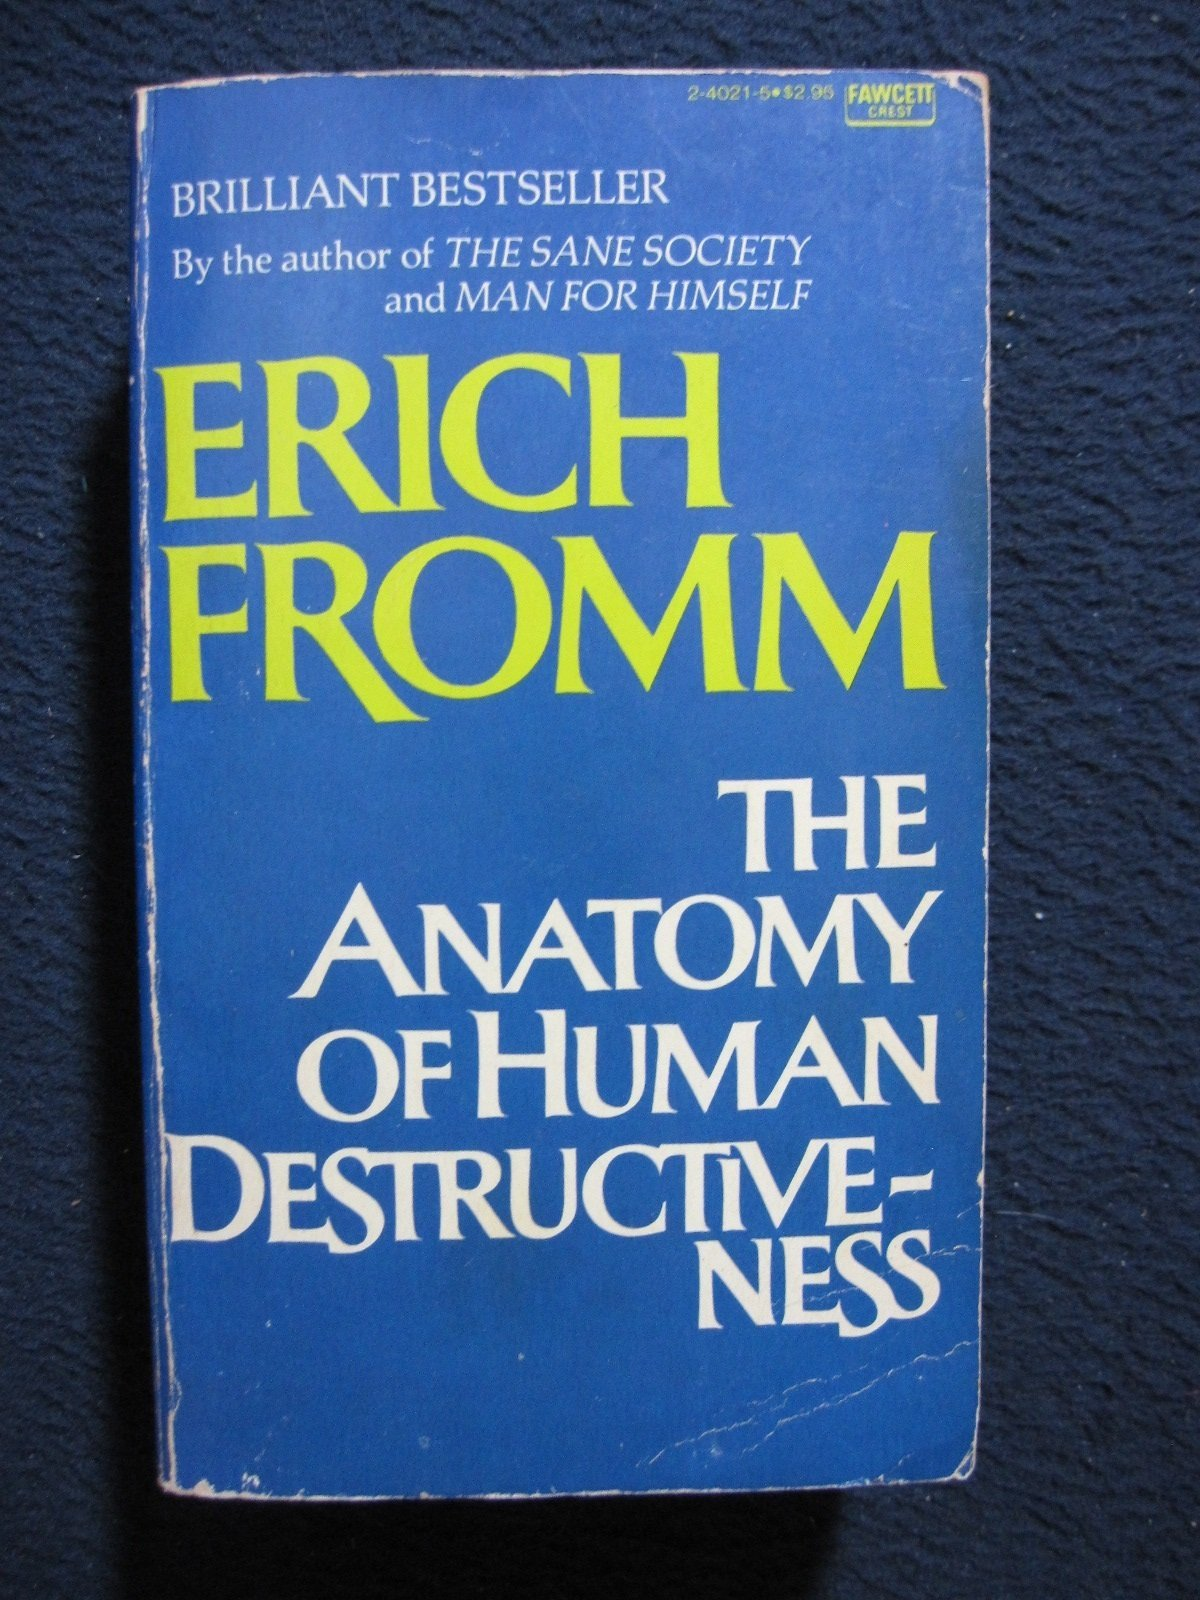 Amazon Buy Anatomy Human Destruct Book Online At Low Prices In